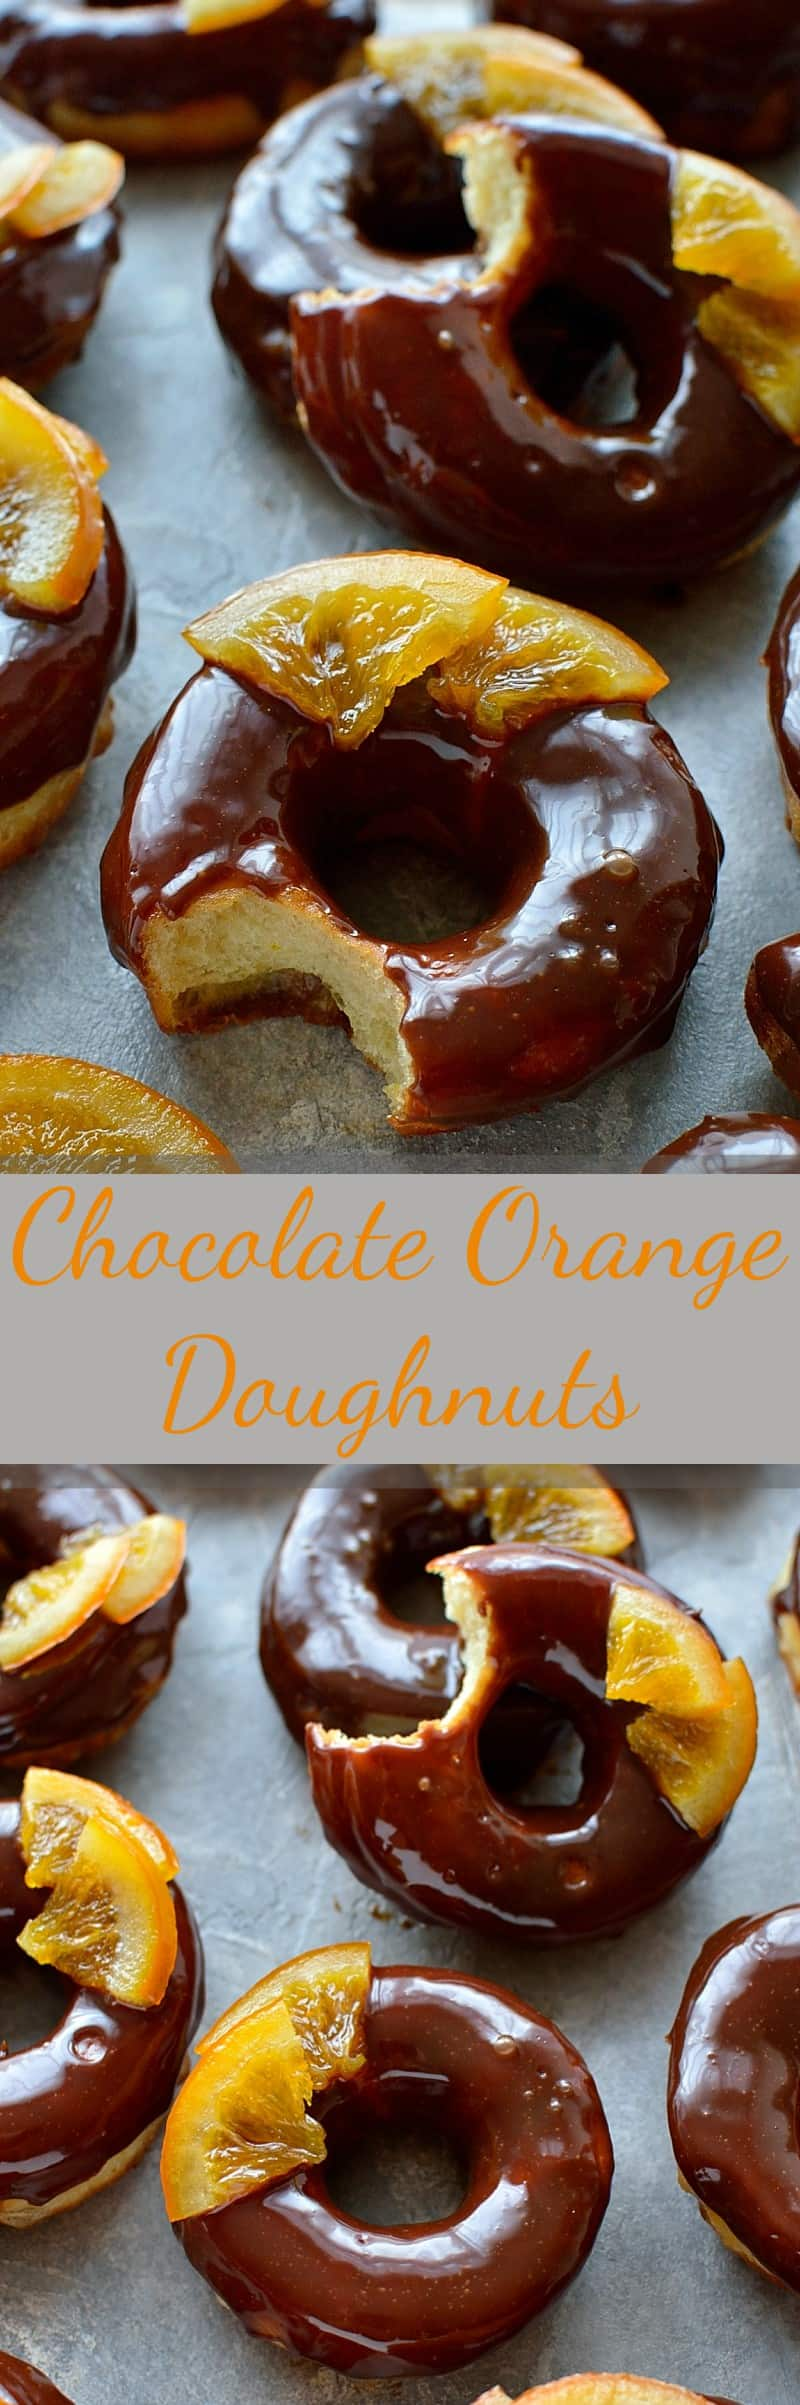 Chocolate orange doughnuts - light, soft, orange infused yeast doughnuts with chocolate orange glaze and candied oranges.